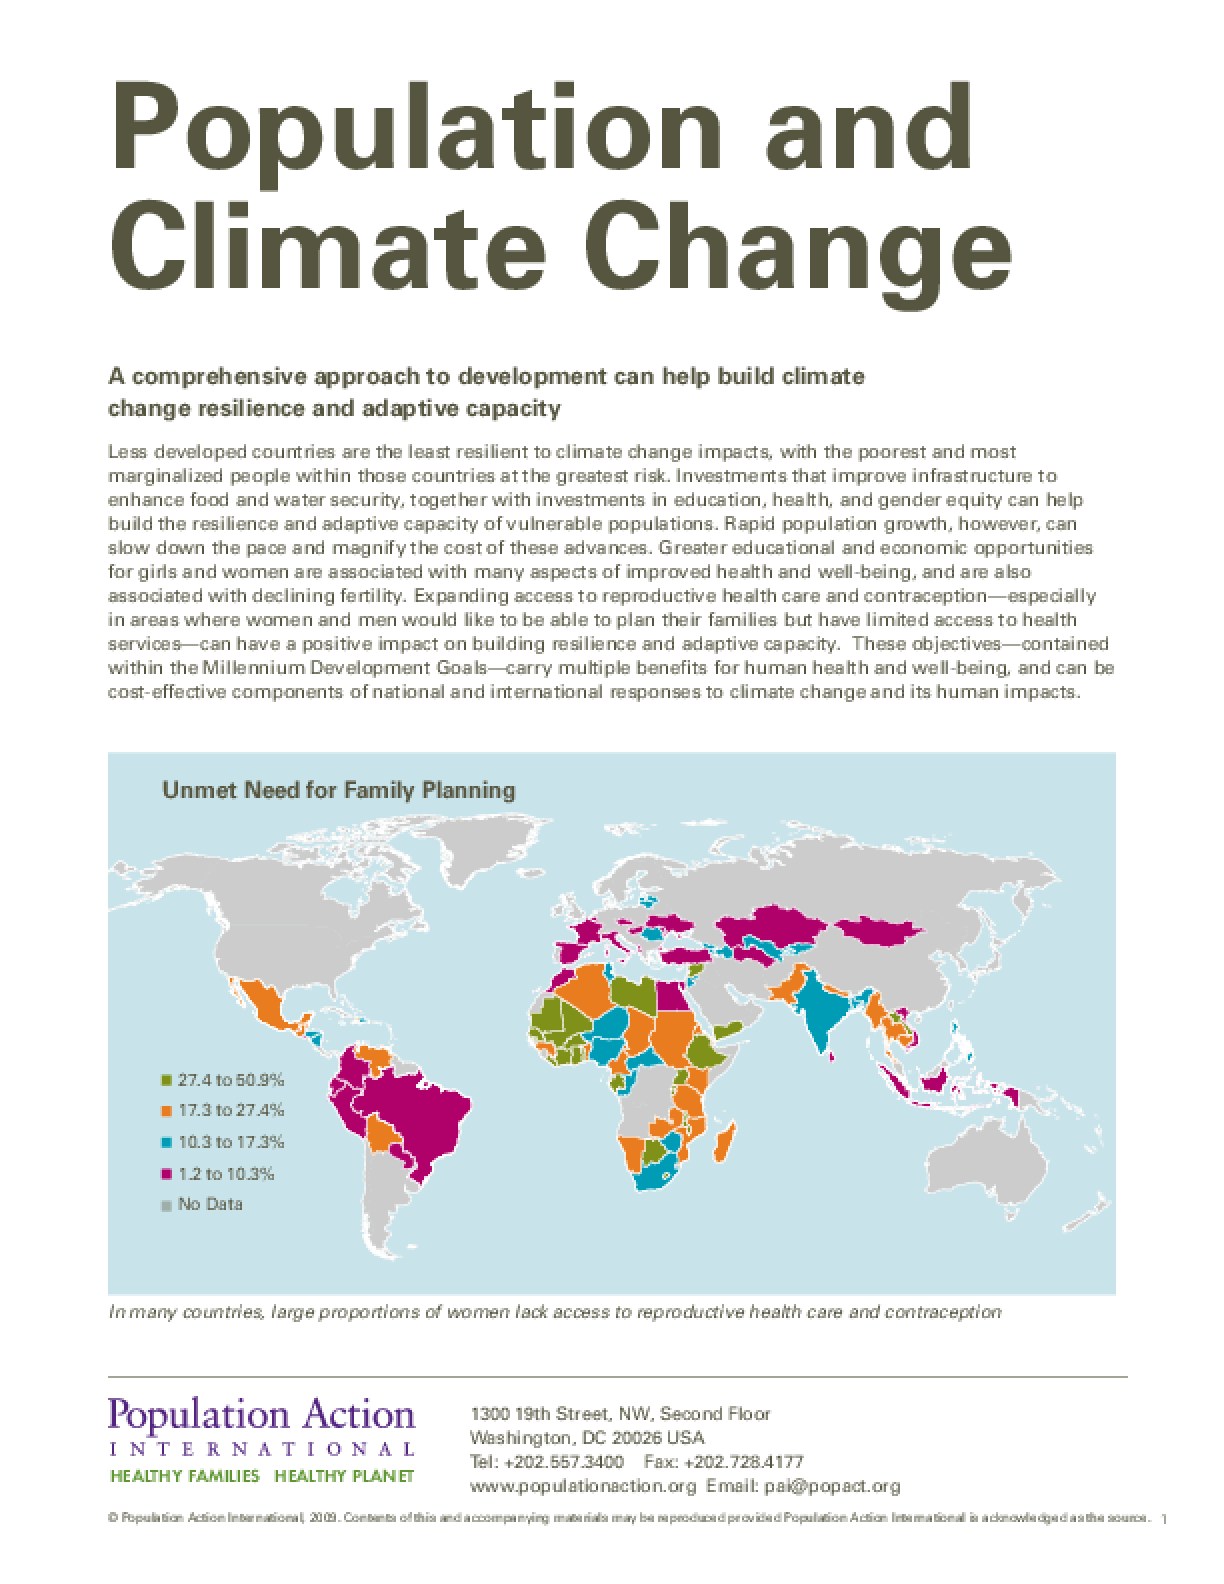 Population and Climate Change Data Sheet